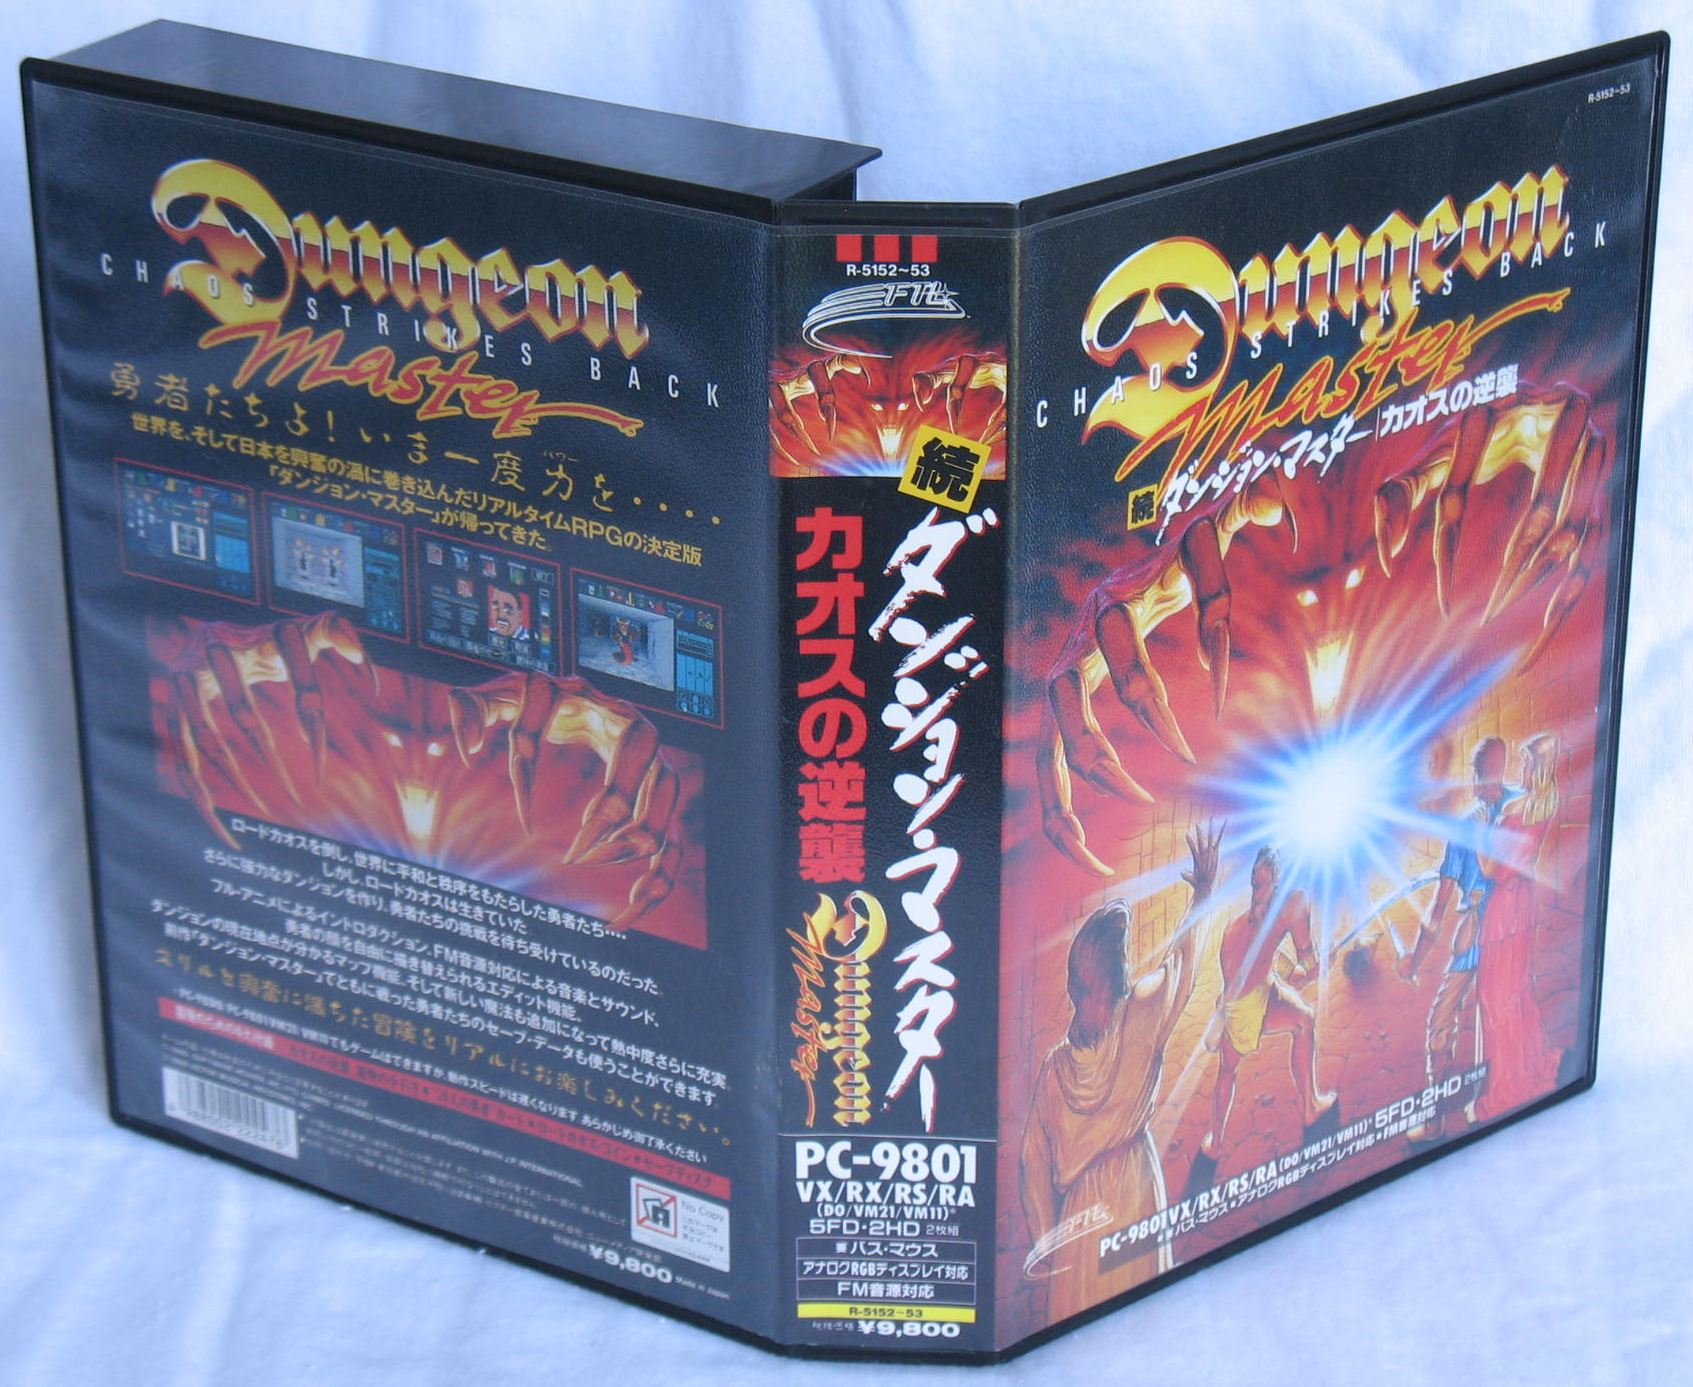 Game - Chaos Strikes Back - JP - PC-9801 - 5.25-inch - Box - Front Back Left Top - Photo